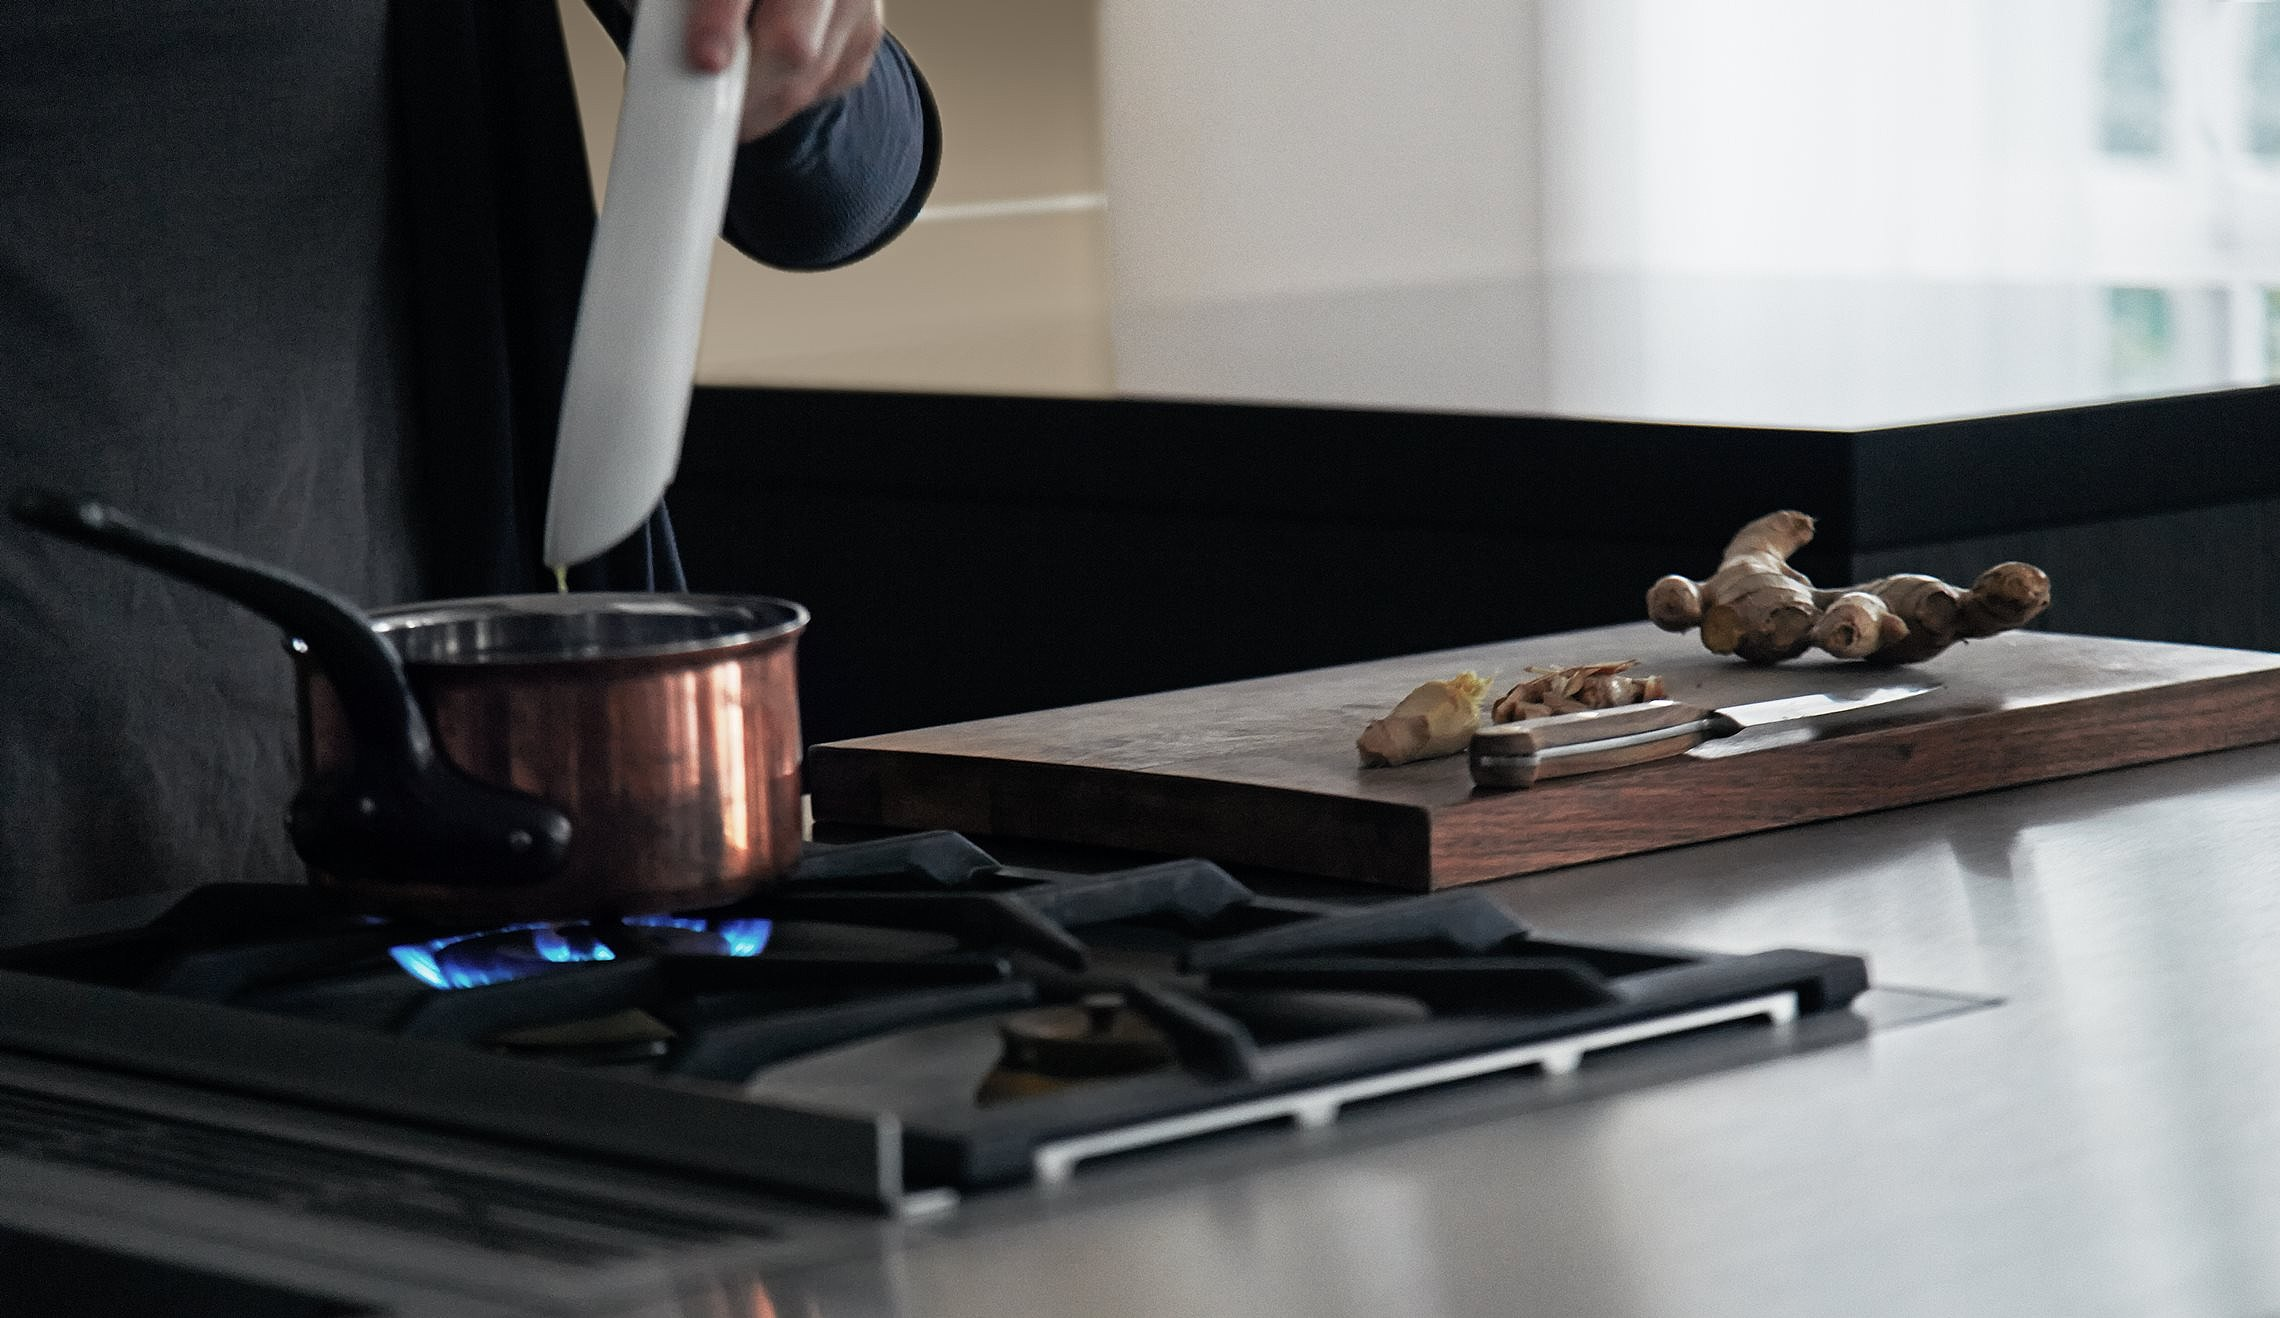 Gas stove integrated into the kitchen island for plenty of room and flexibility for food preparation